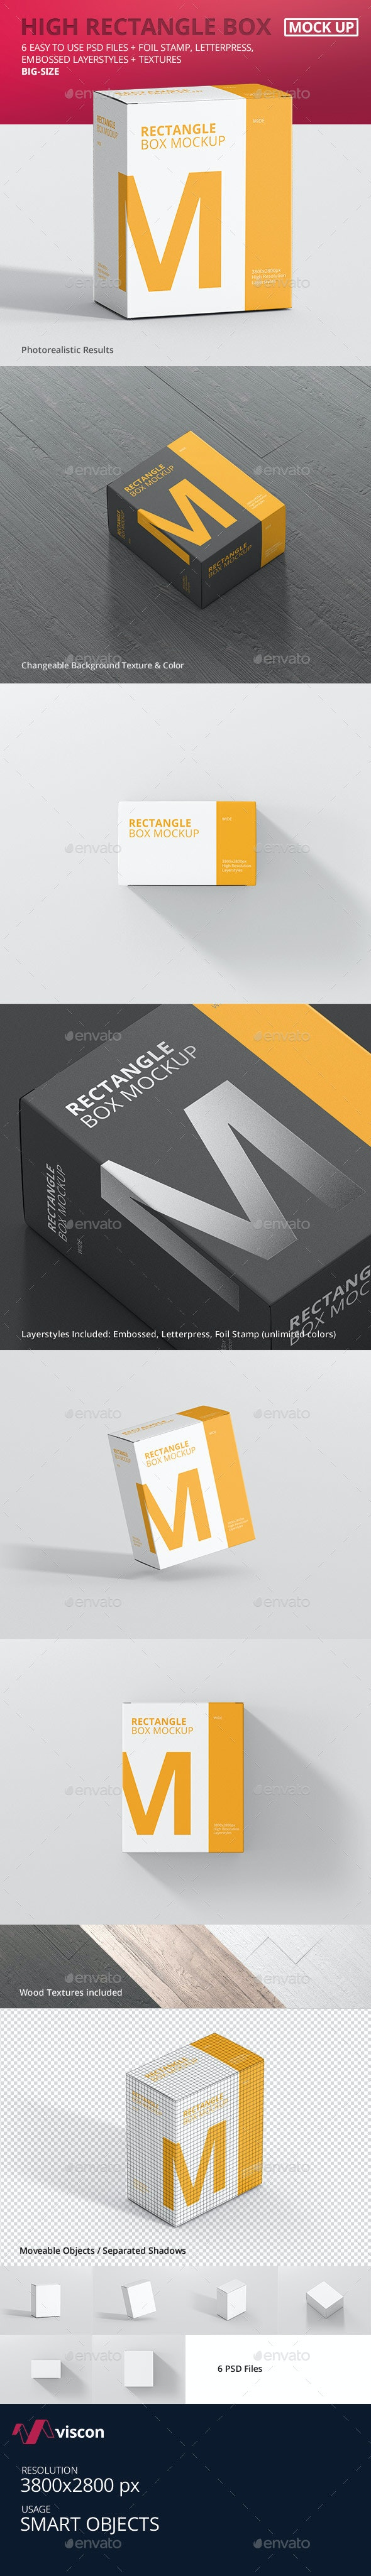 Box Mockup - High Rectangle Big Size - Miscellaneous Packaging